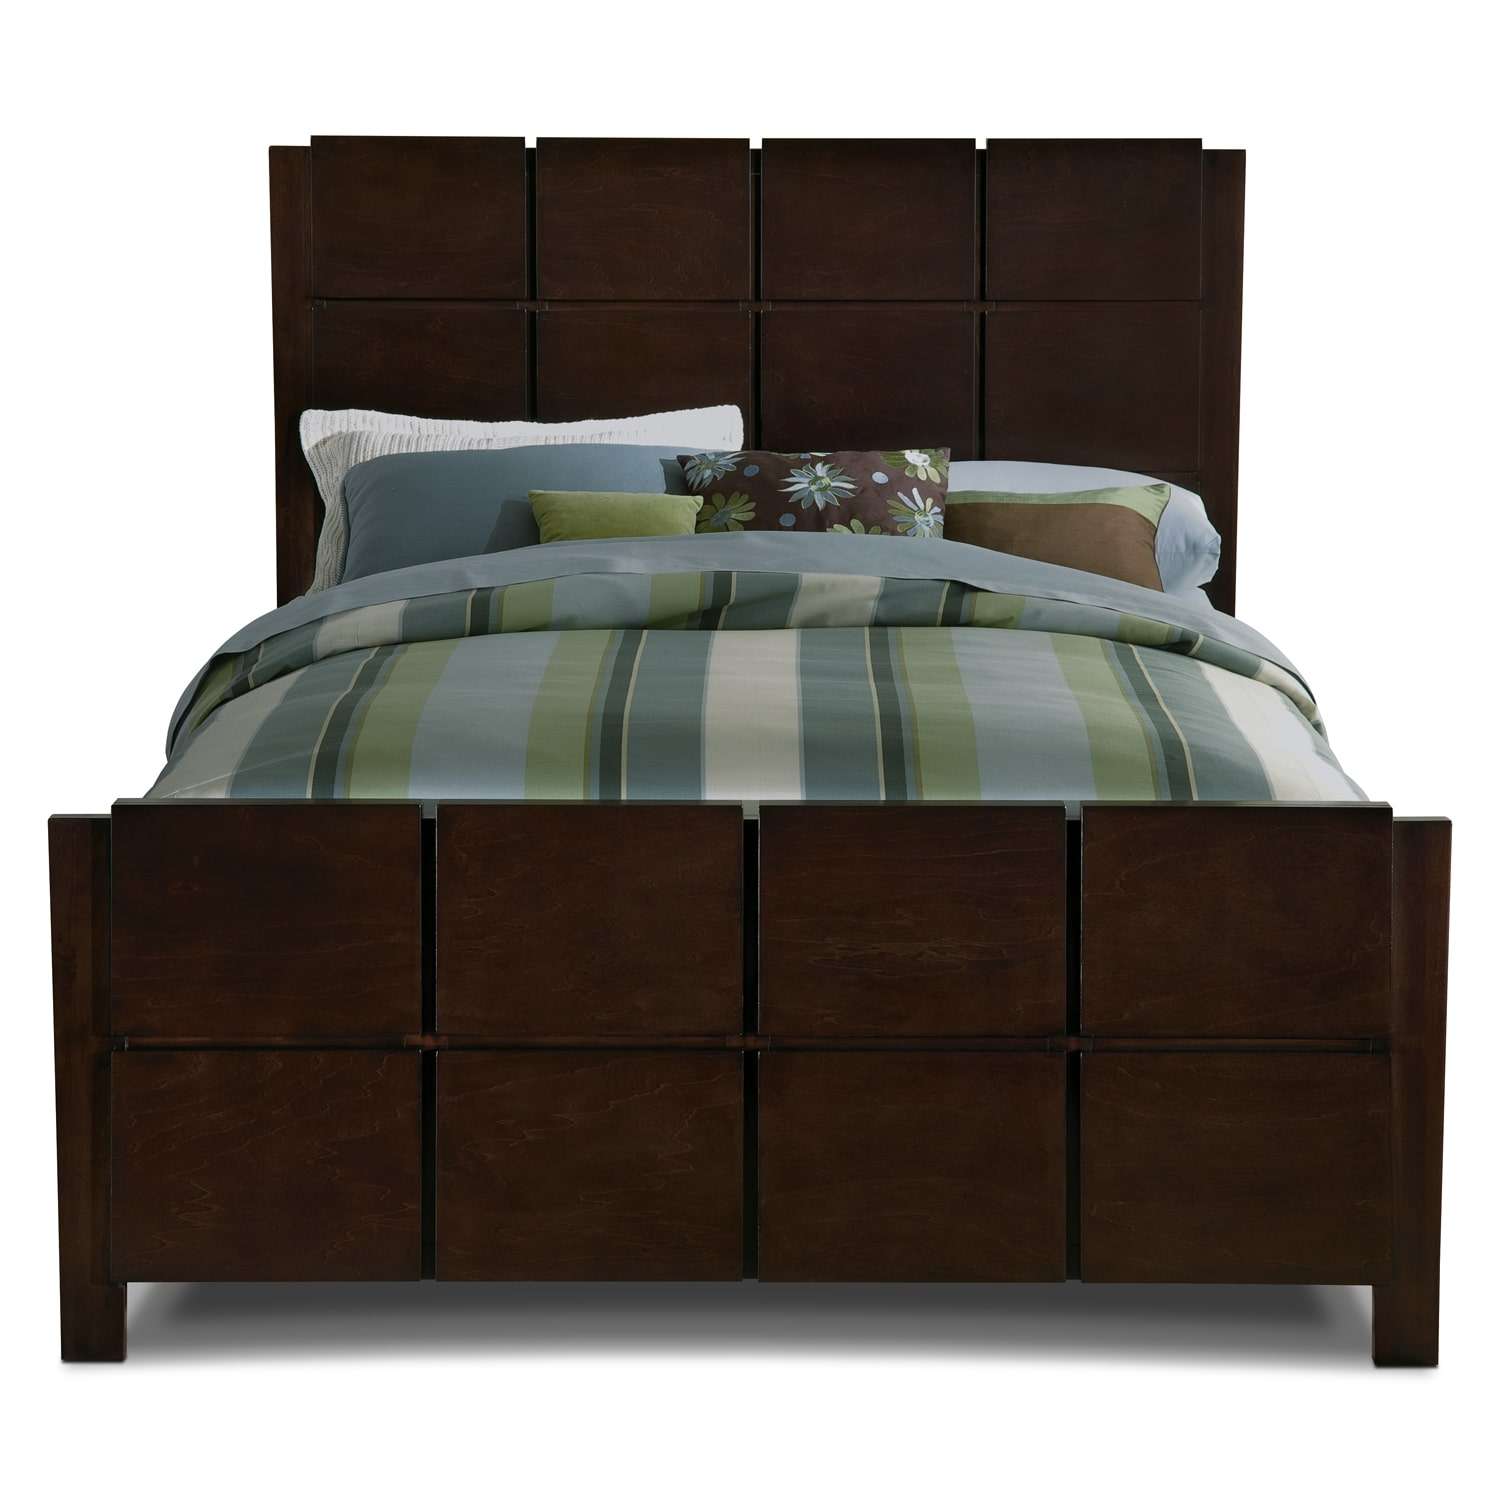 Mosaic king bed dark brown american signature furniture American home furniture bedroom sets